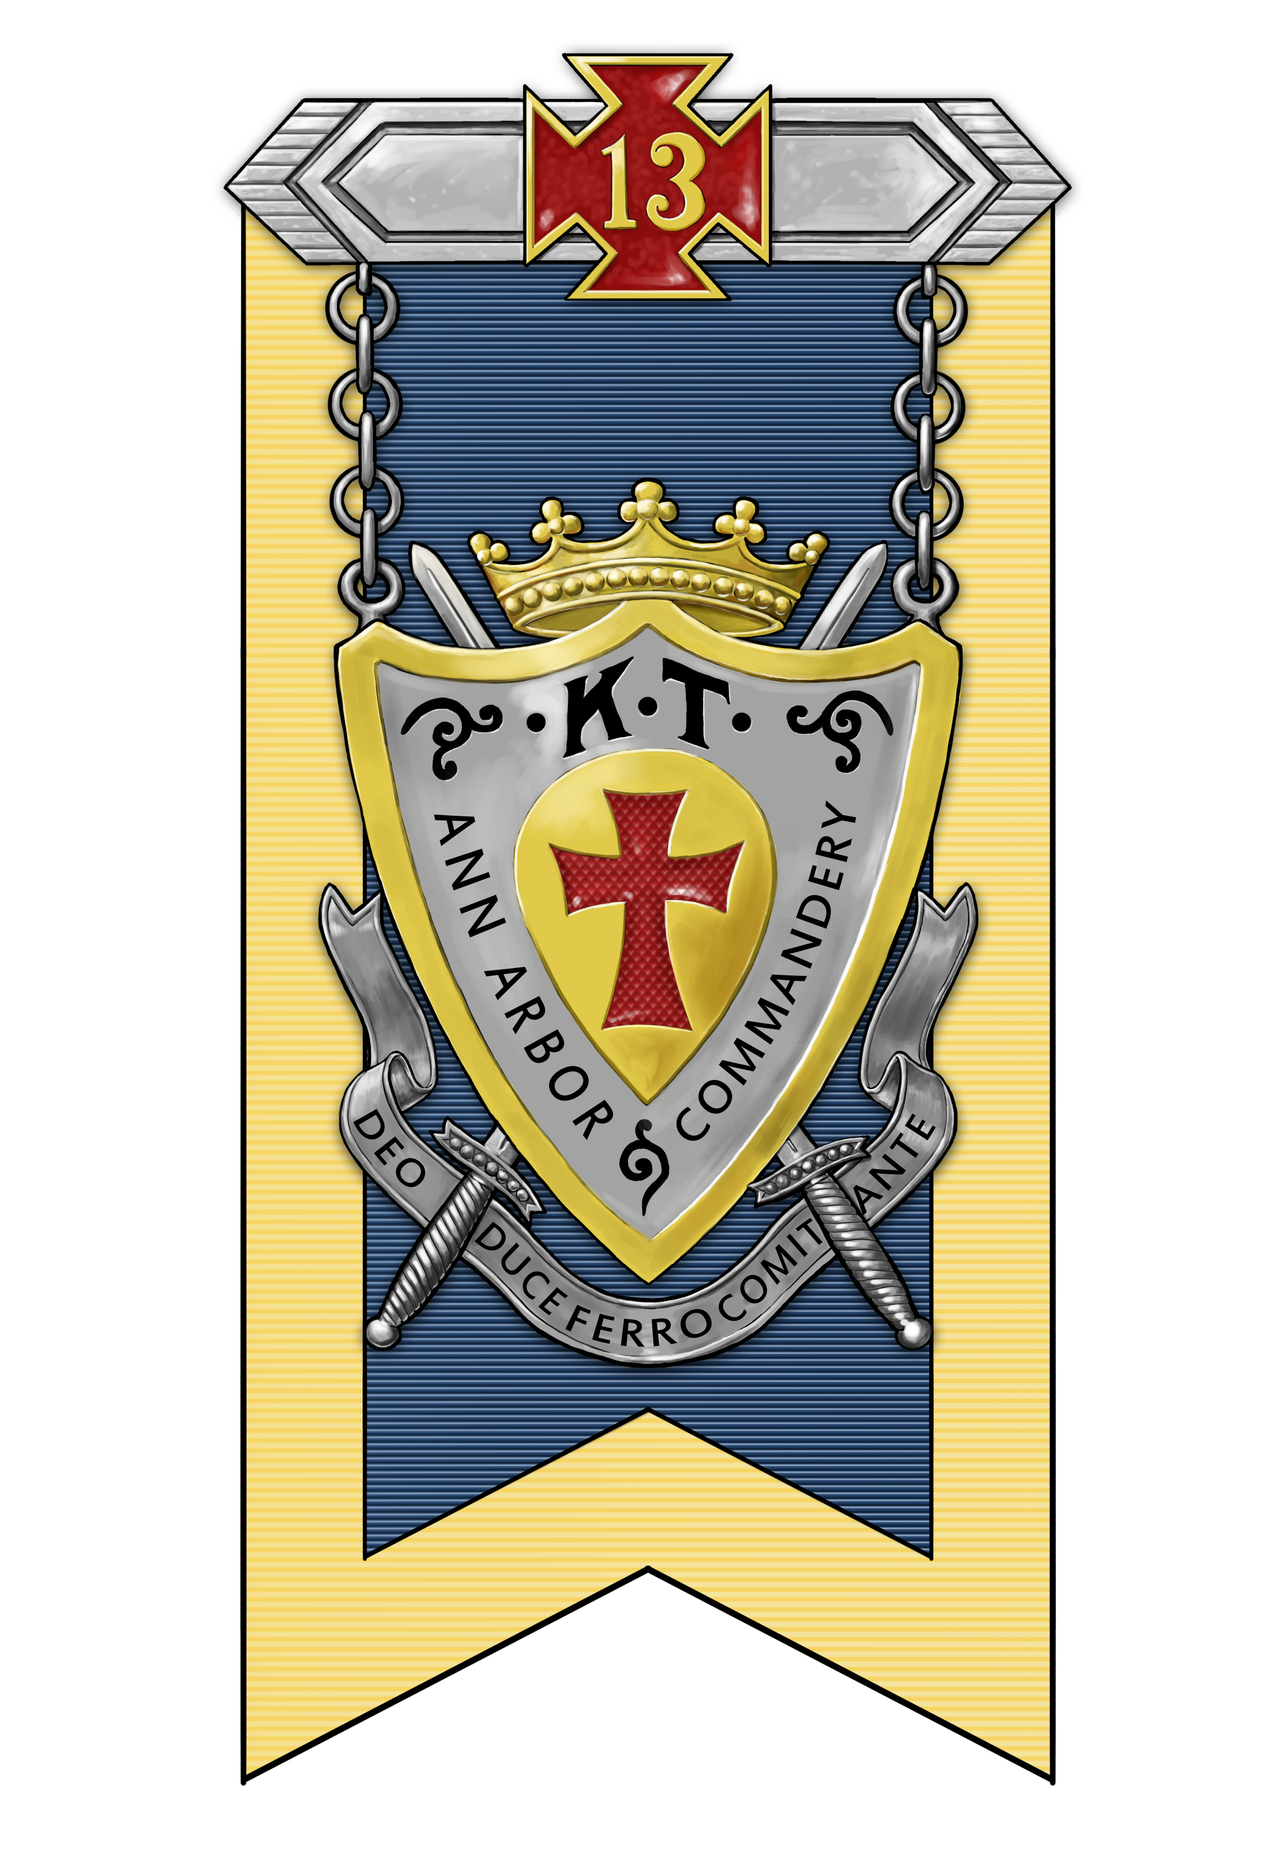 Check out this artist's rendition of Ann Arbor Commandery No. 13's Drill Badge!